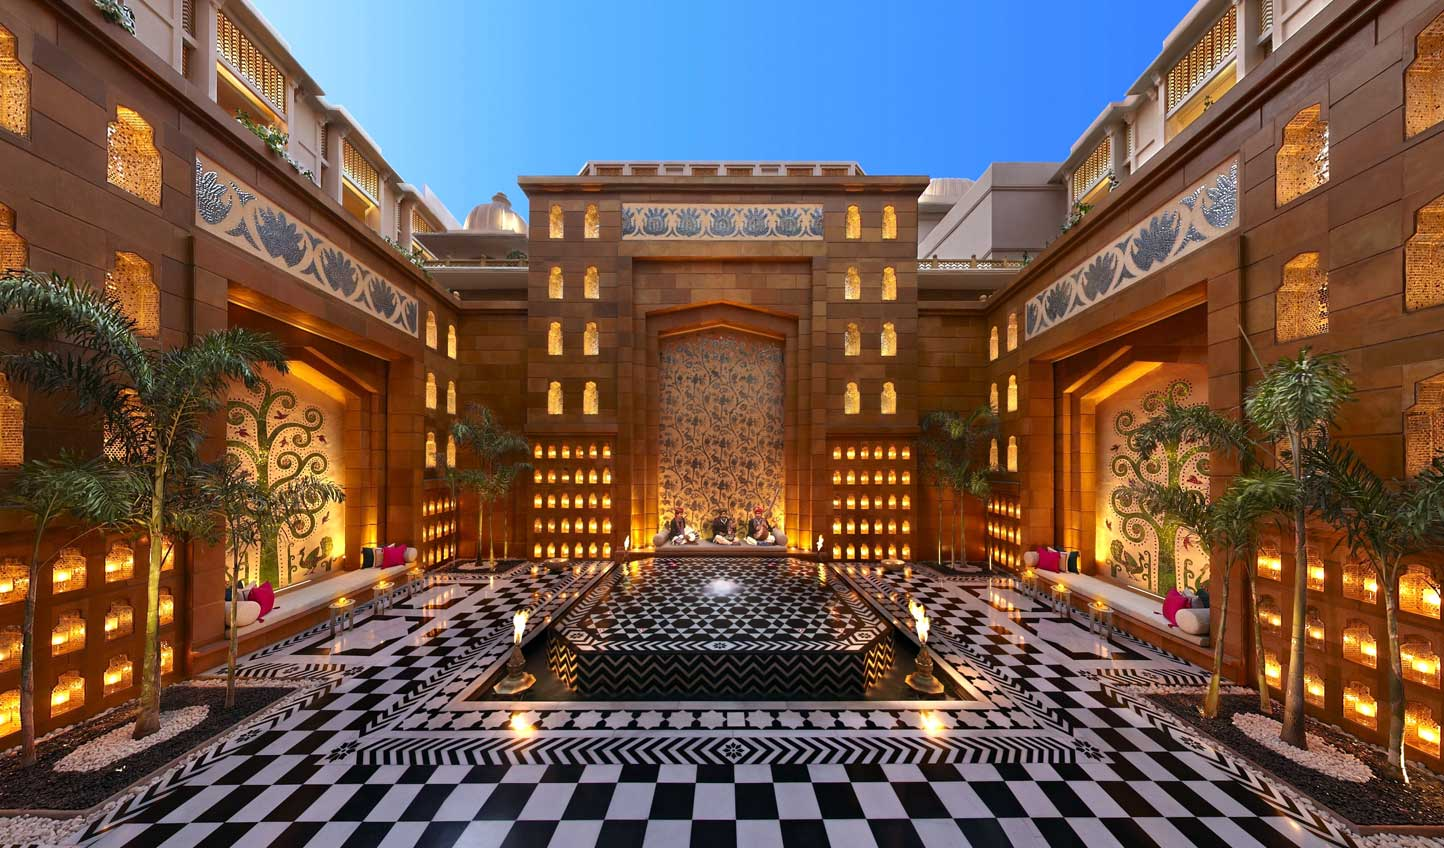 Head out into the courtyard for a nightly display of traditional Rajasthani folk music and dance